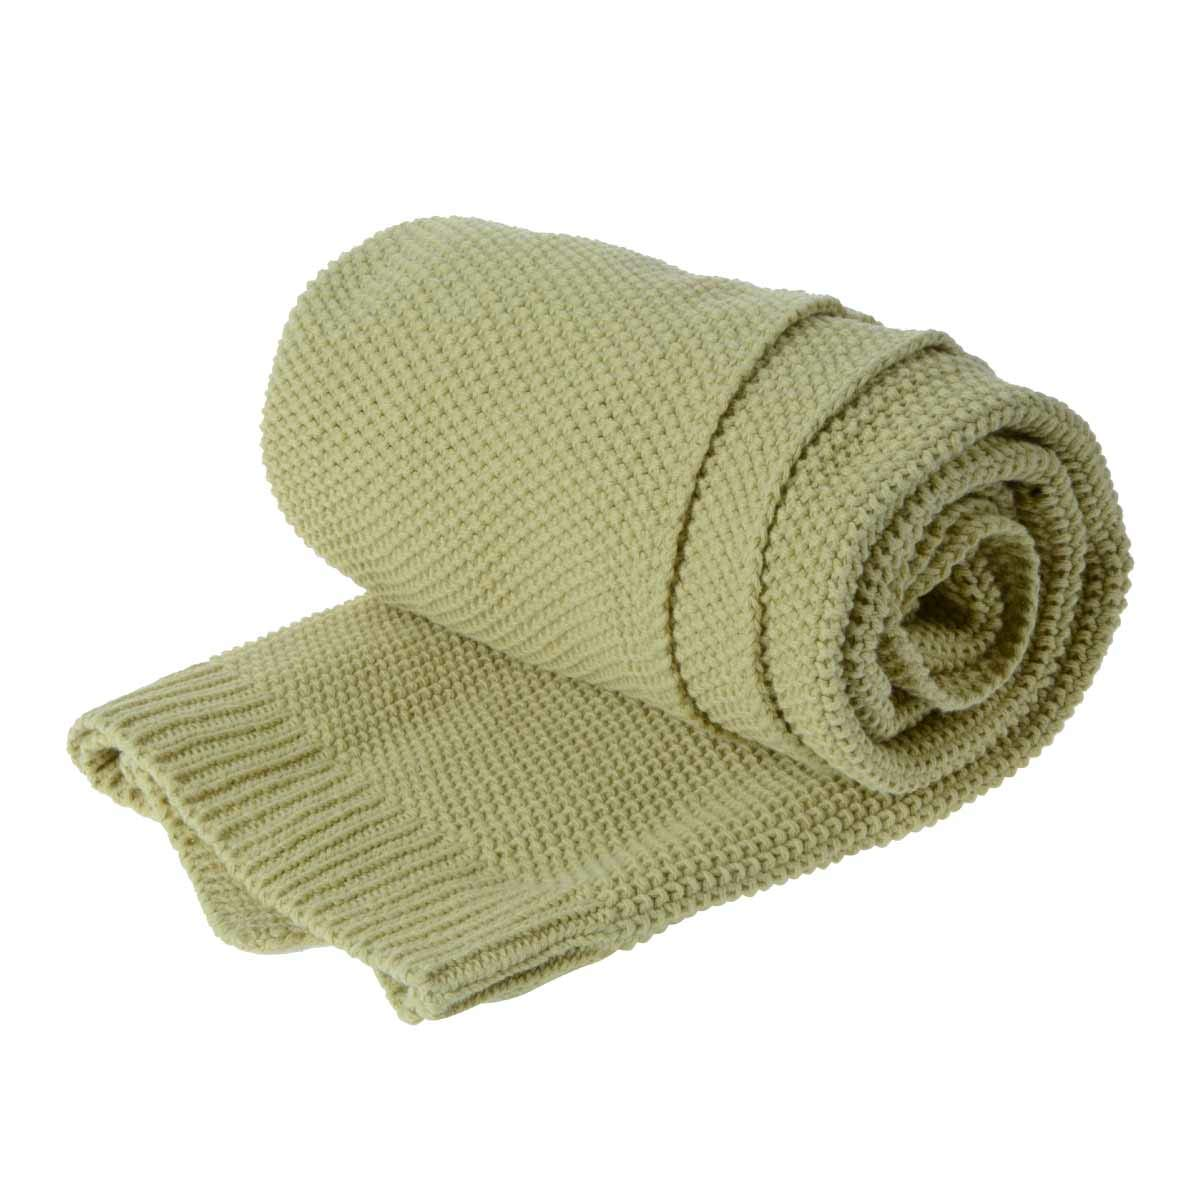 Saim Throw Blanket 100% Cotton Lightweight Throw for Sofa, Chair, Couch, Picnic, Camping, Beach - Cable Knit Blankets, Soft, Cozy Machine Washable Bed Throws, 30 x 40 Inch, Light Yellow Green